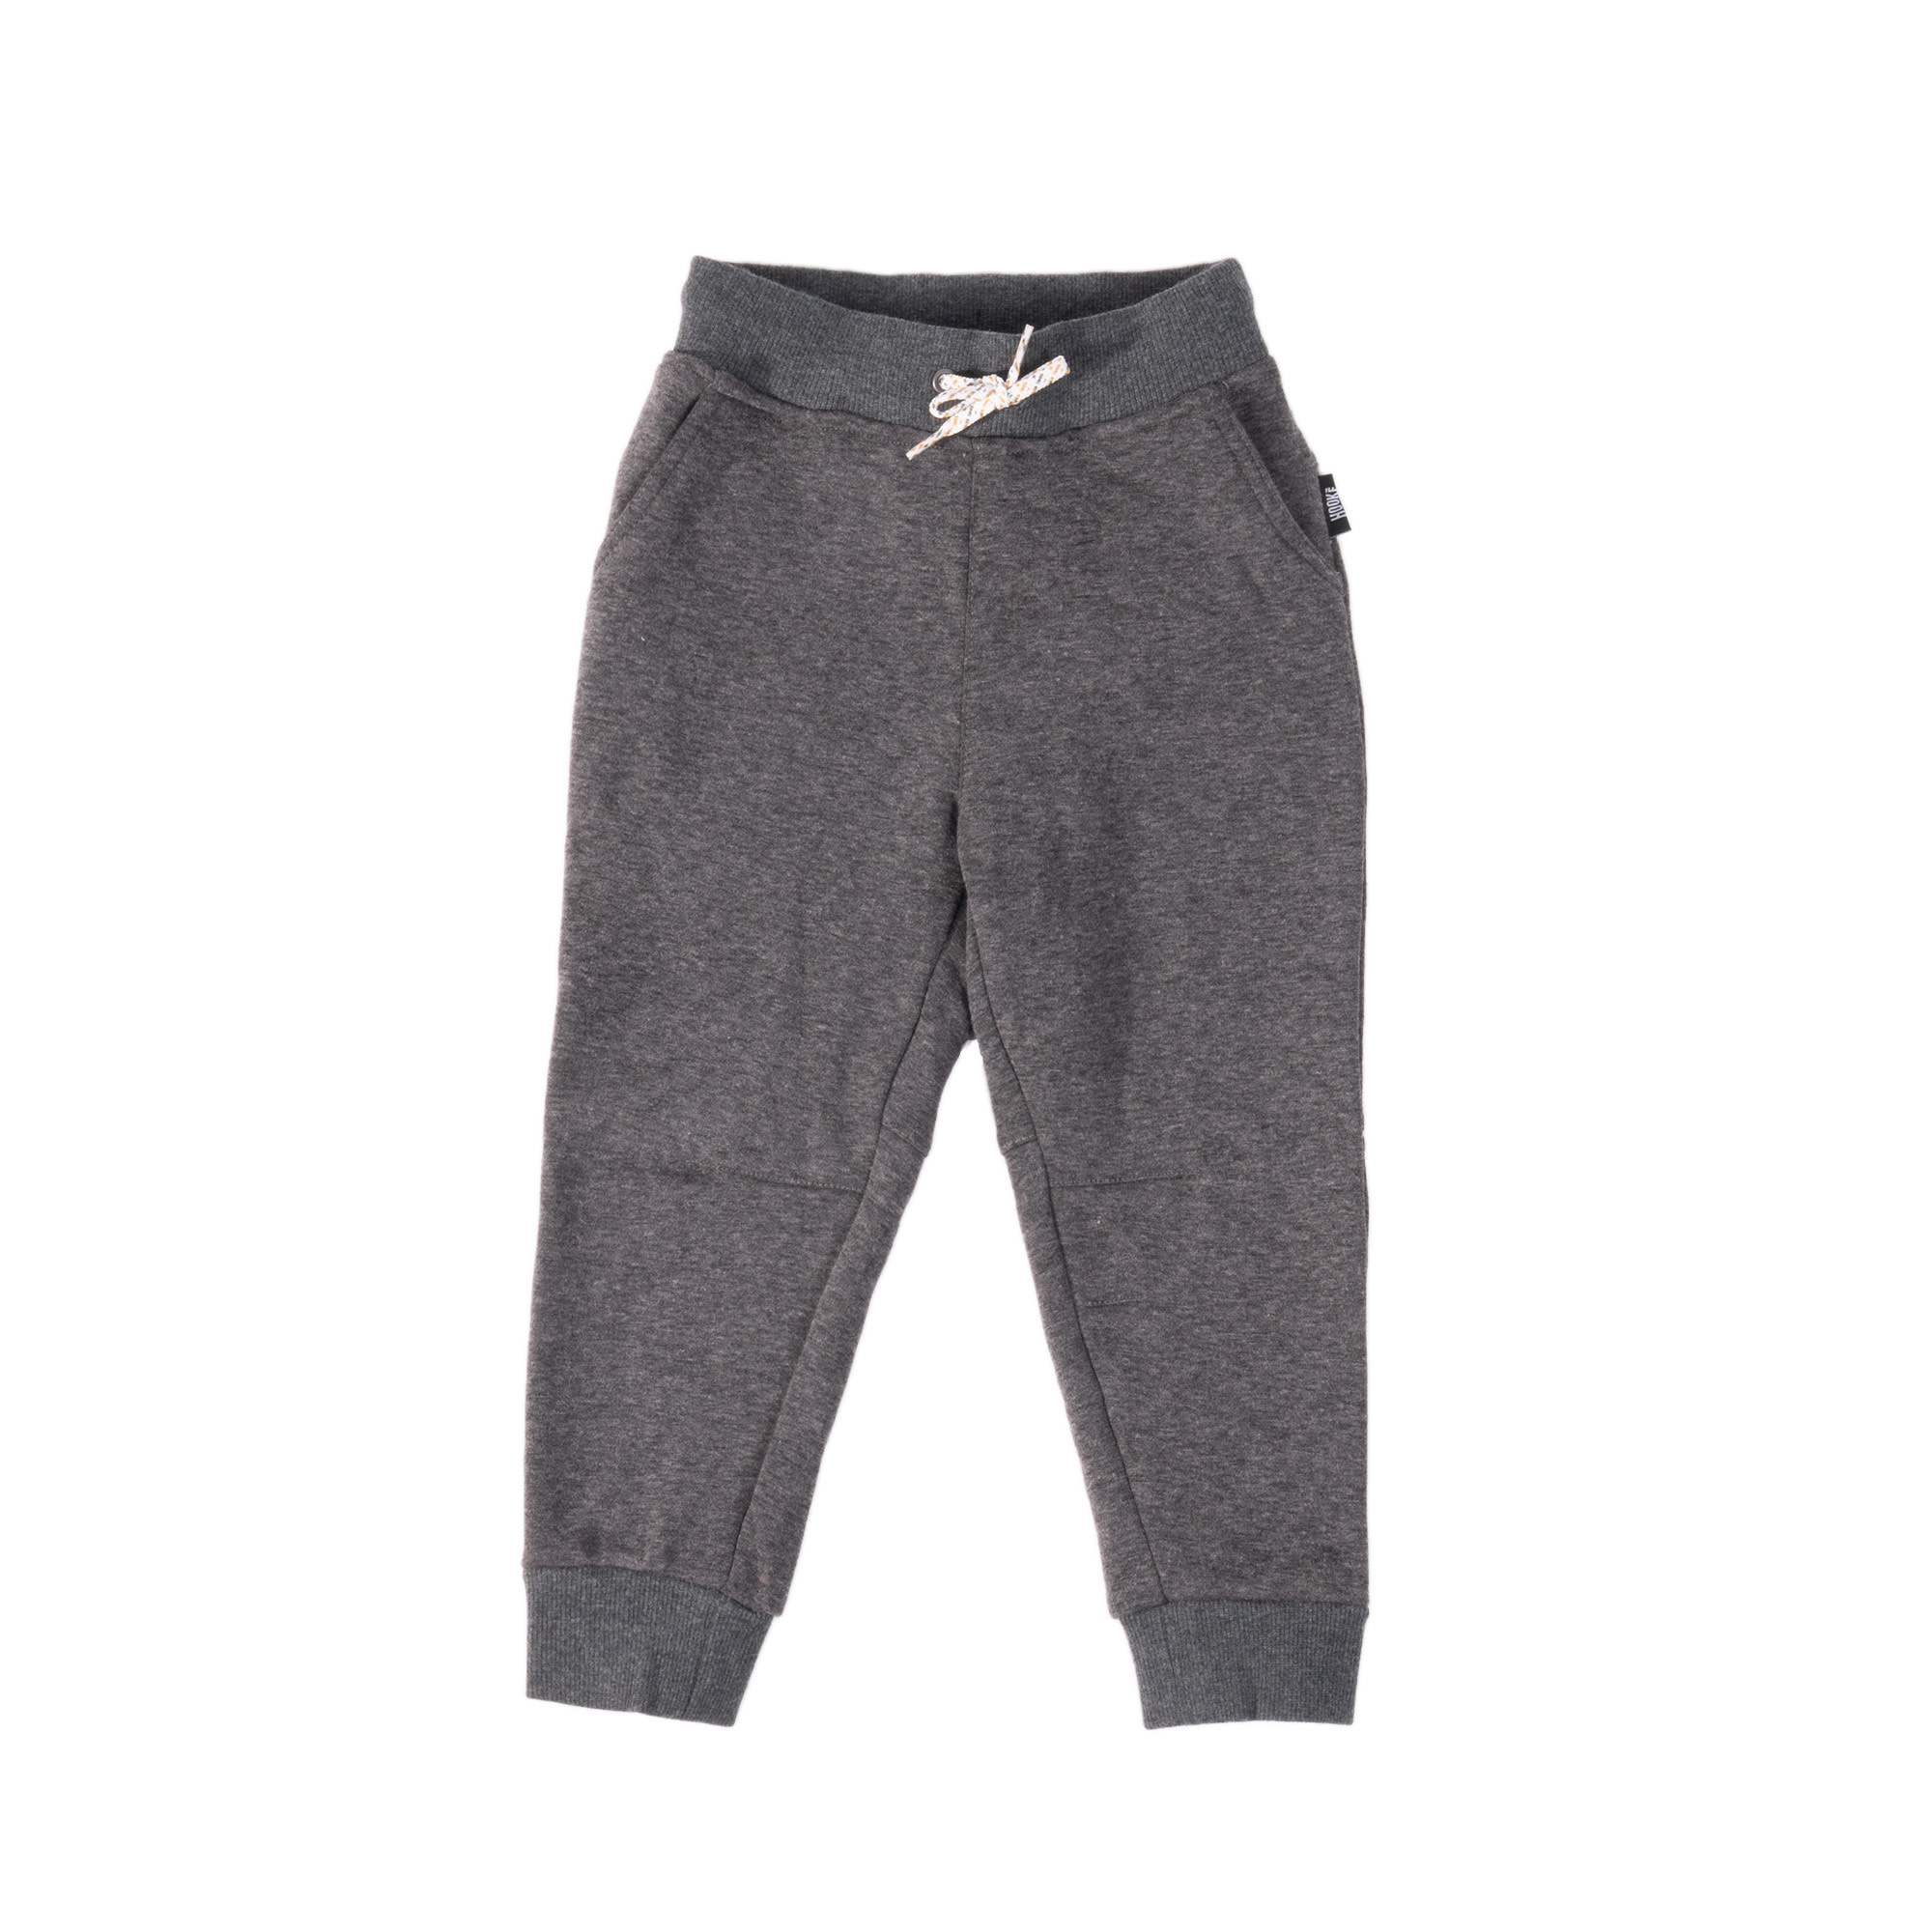 Campbell Sweatpants Charcoal